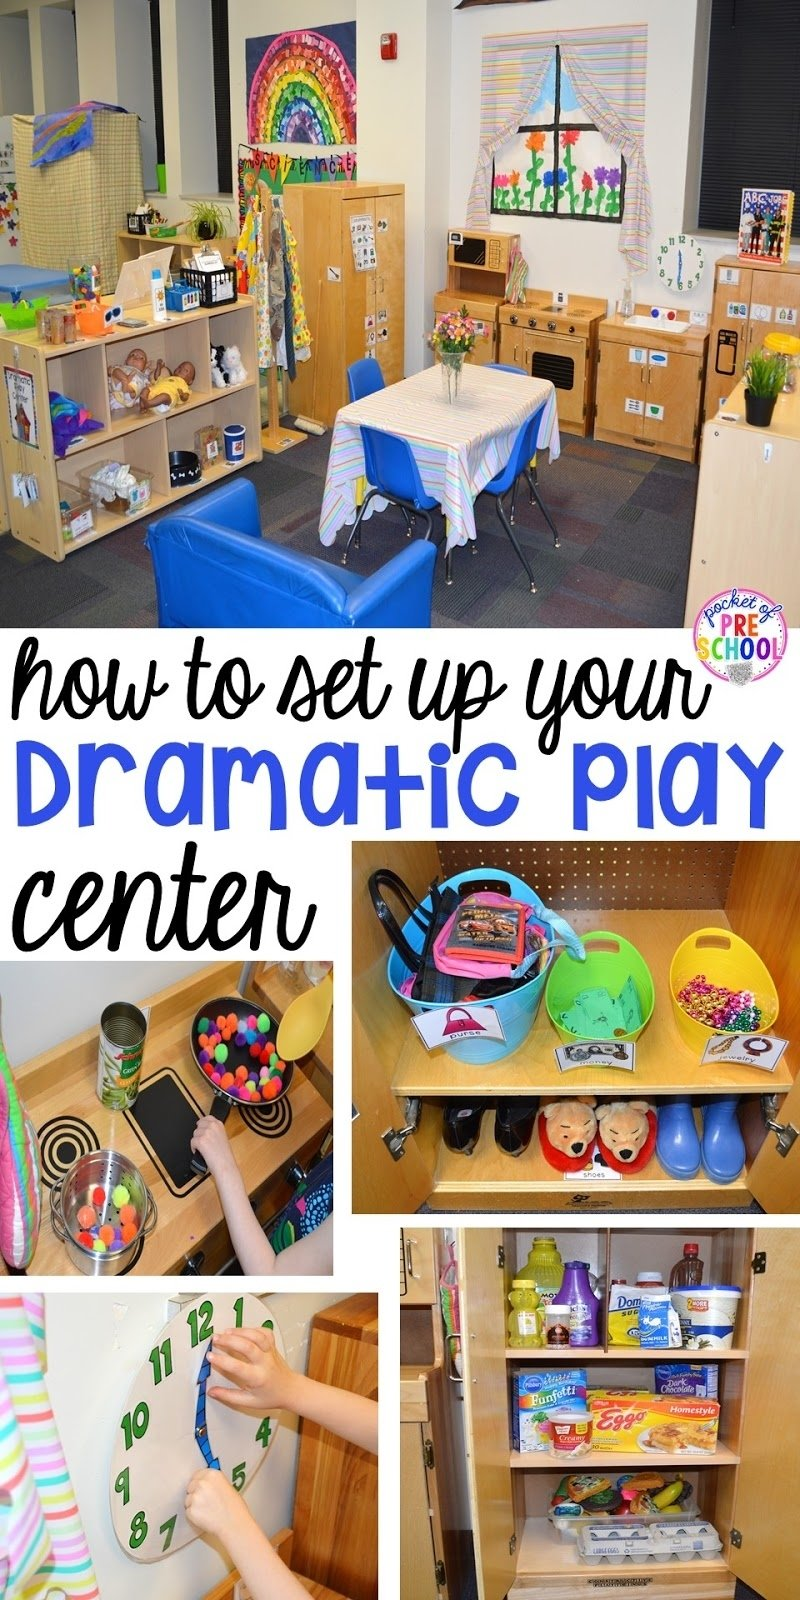 10 Lovely Dramatic Play Ideas For Preschoolers how to set up the dramatic play center in an early childhood 2